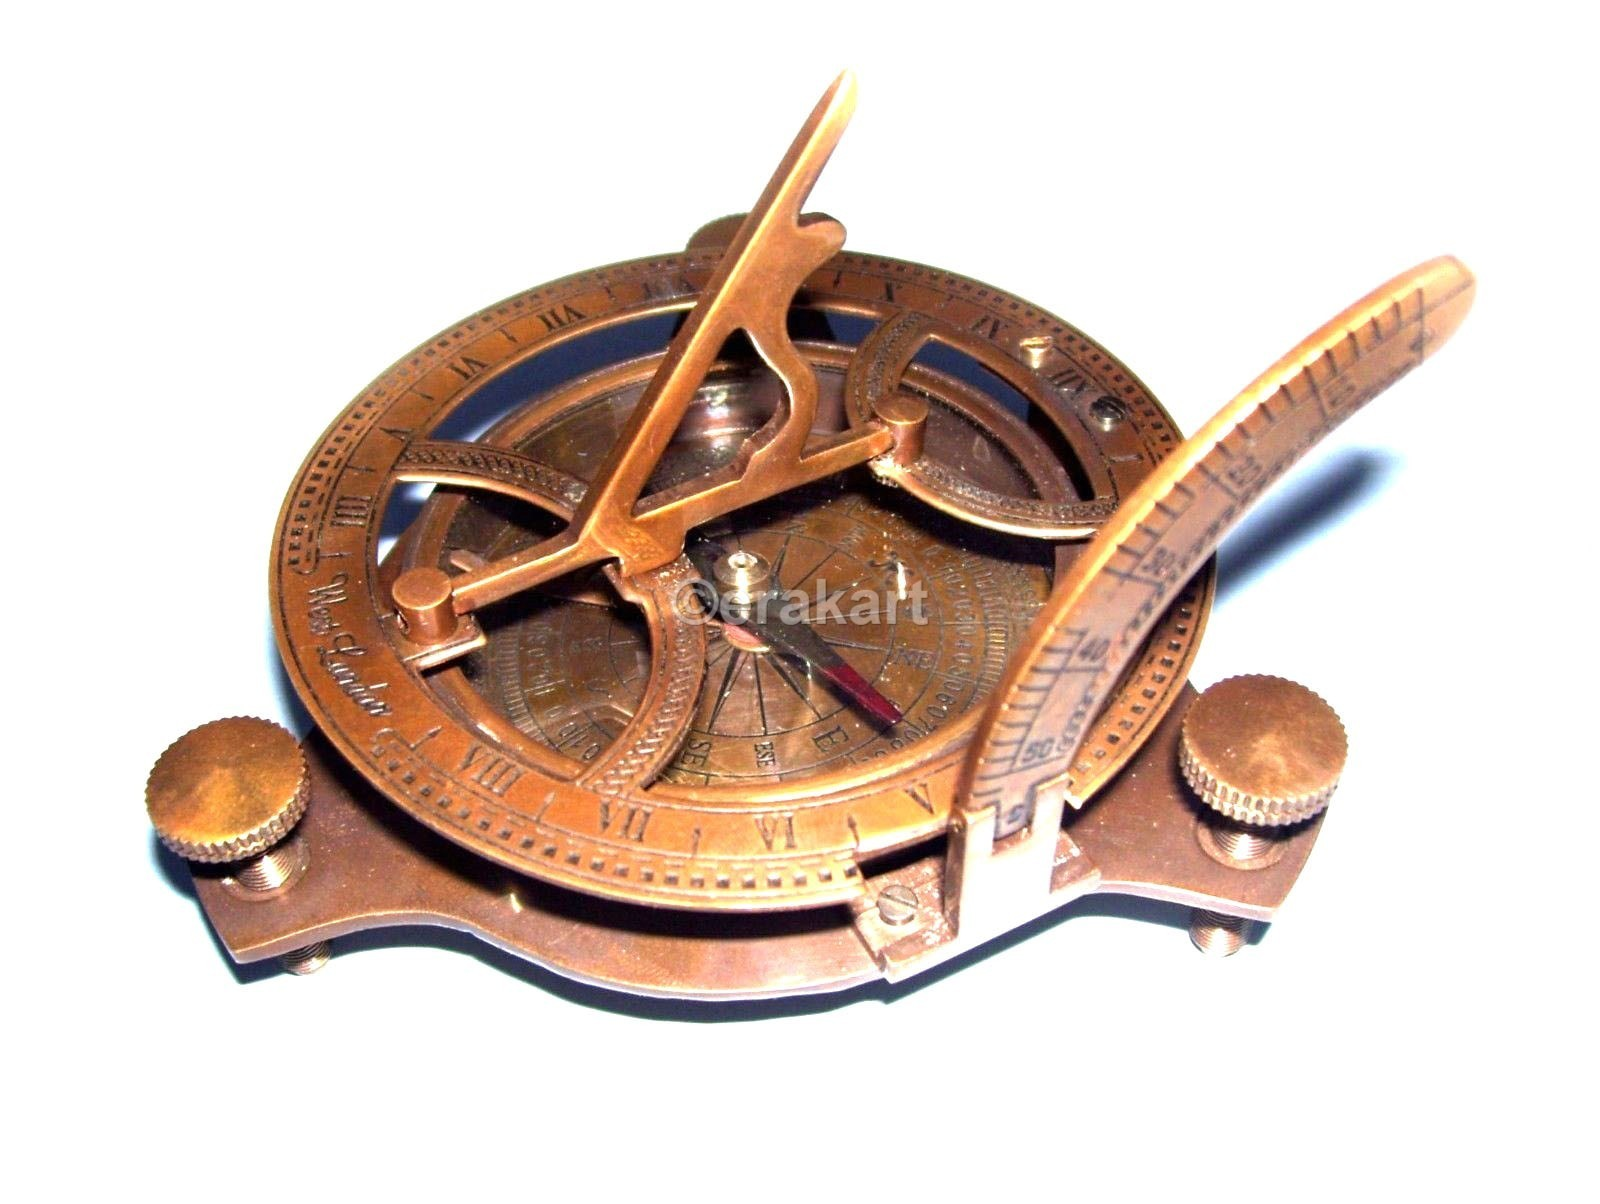 Antique Brass Sundial Compass Buy Nautical Compasses